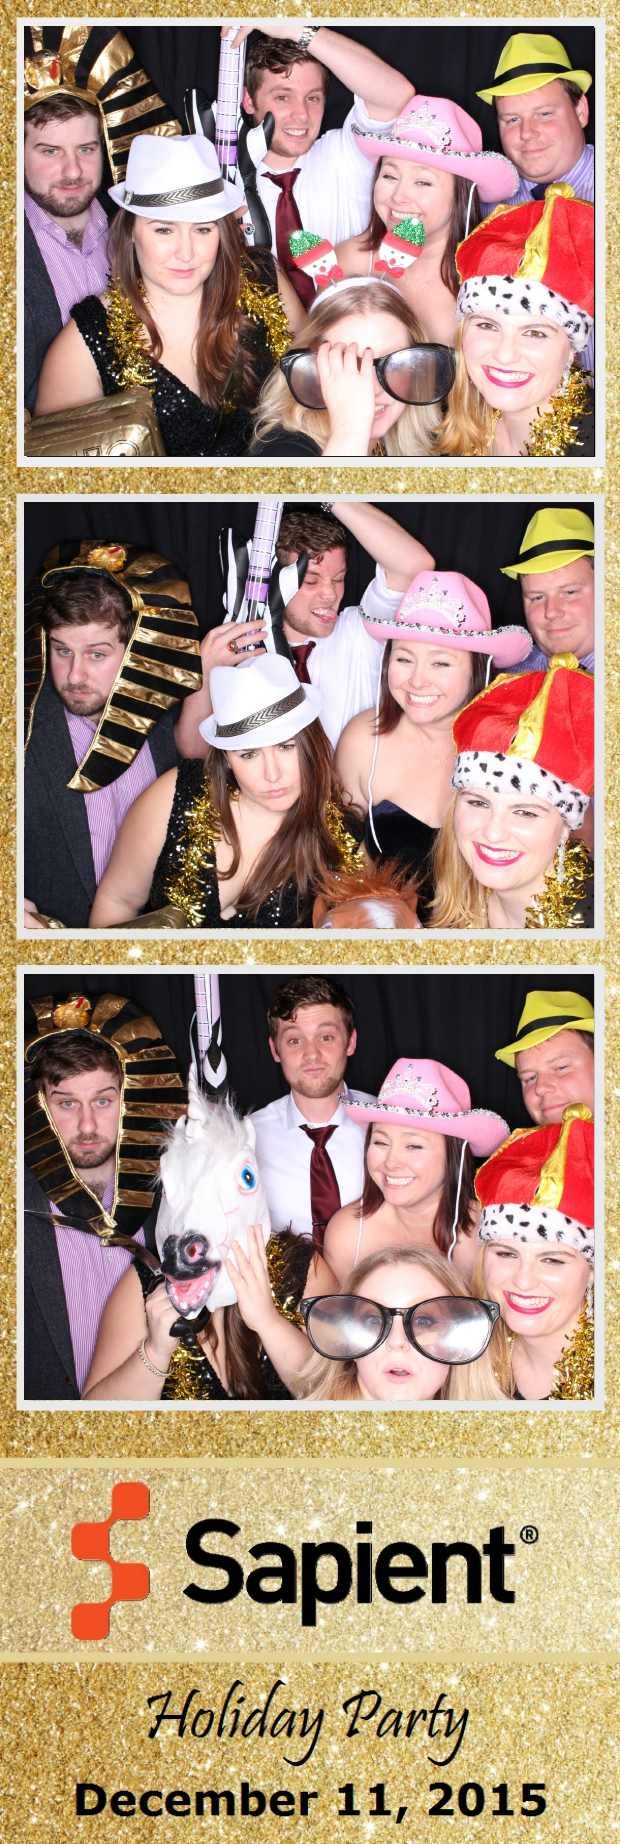 Guest House Events Photo Booth Sapient Holiday Party (42).jpg